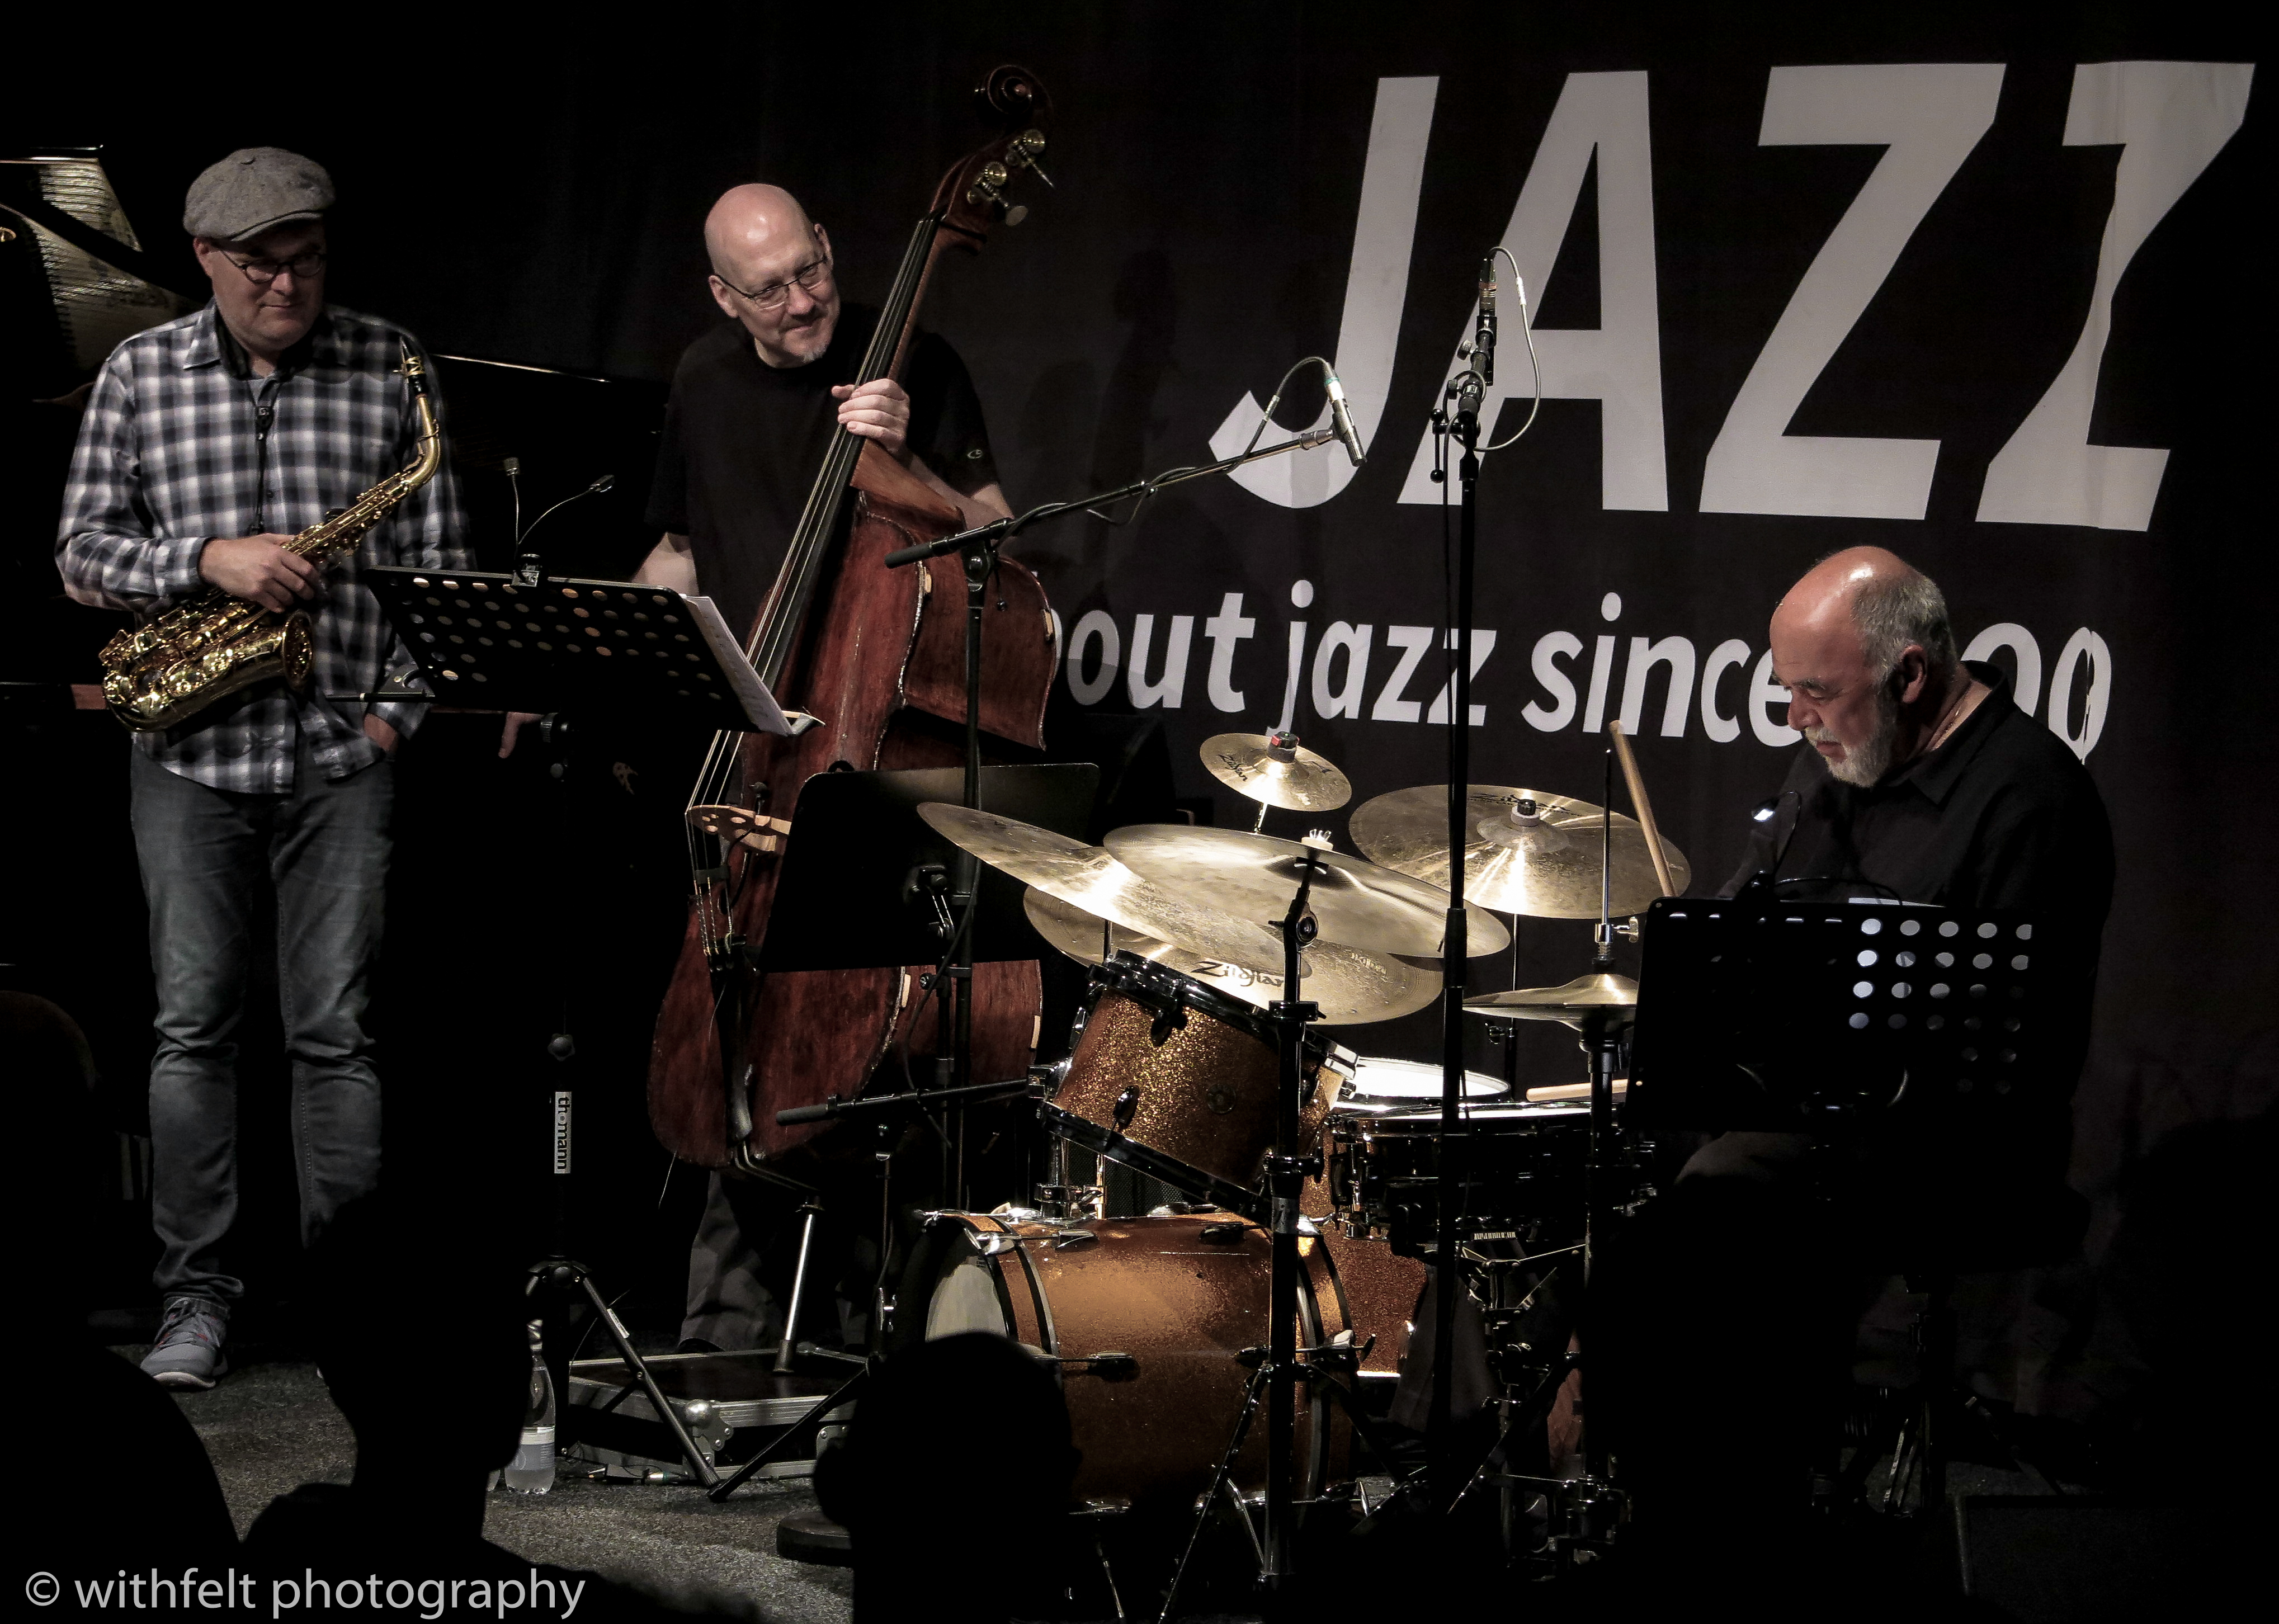 Peter Erskine Scott Colley Benjamin Koppel at Summer Jazz 2017, Copenhagen Jazz Festival, Denmark